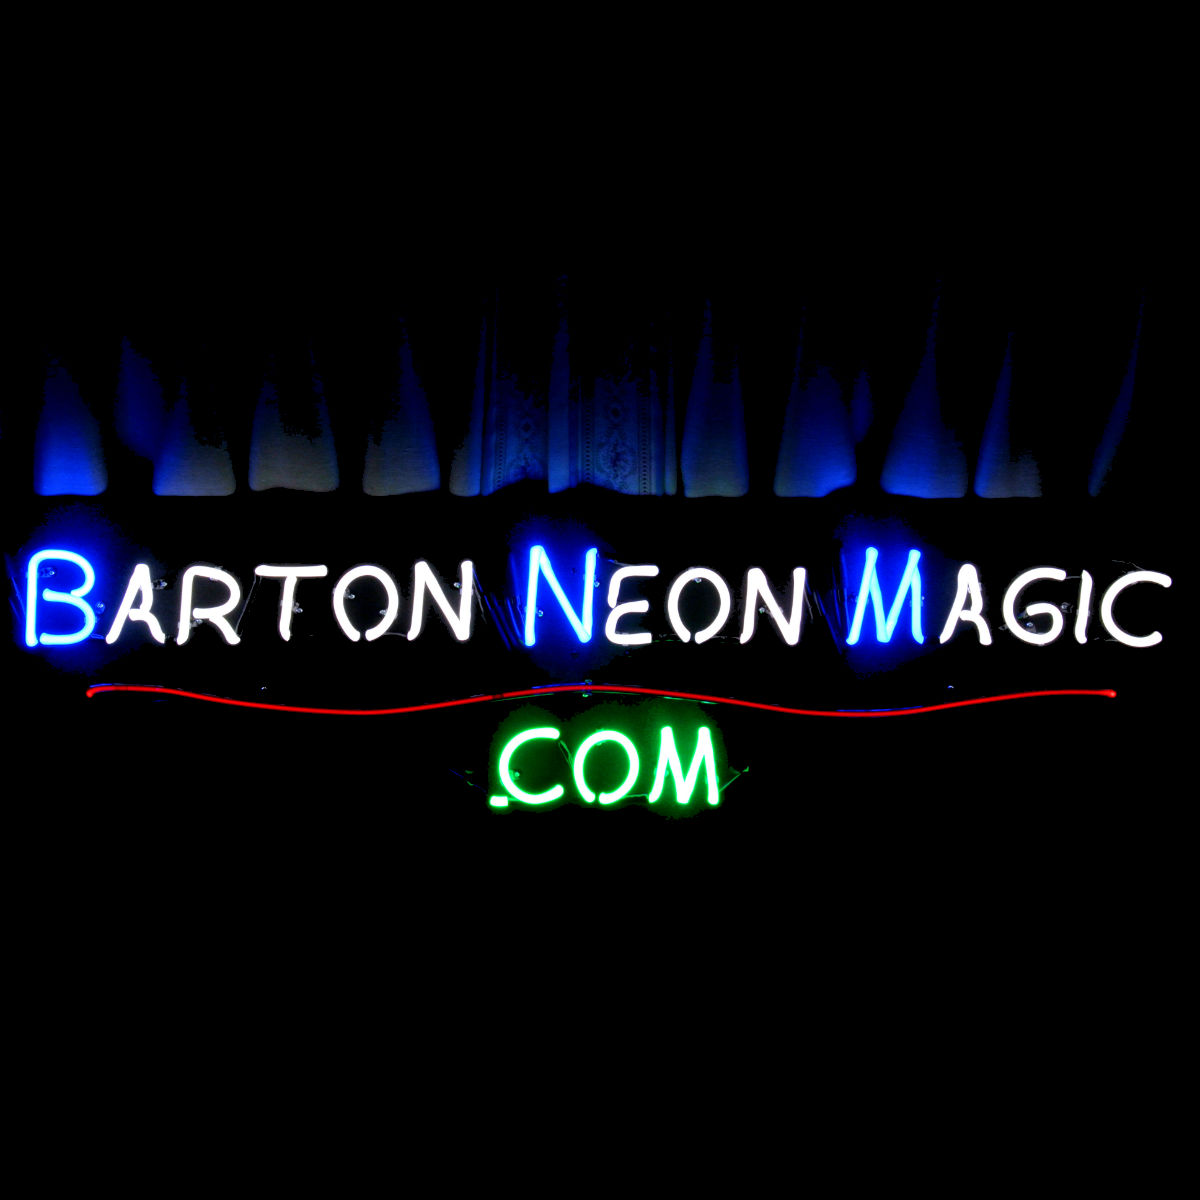 Designer Stained Italian Glass Neon Light Sculptures by John Barton - BartonNeonMagic.com